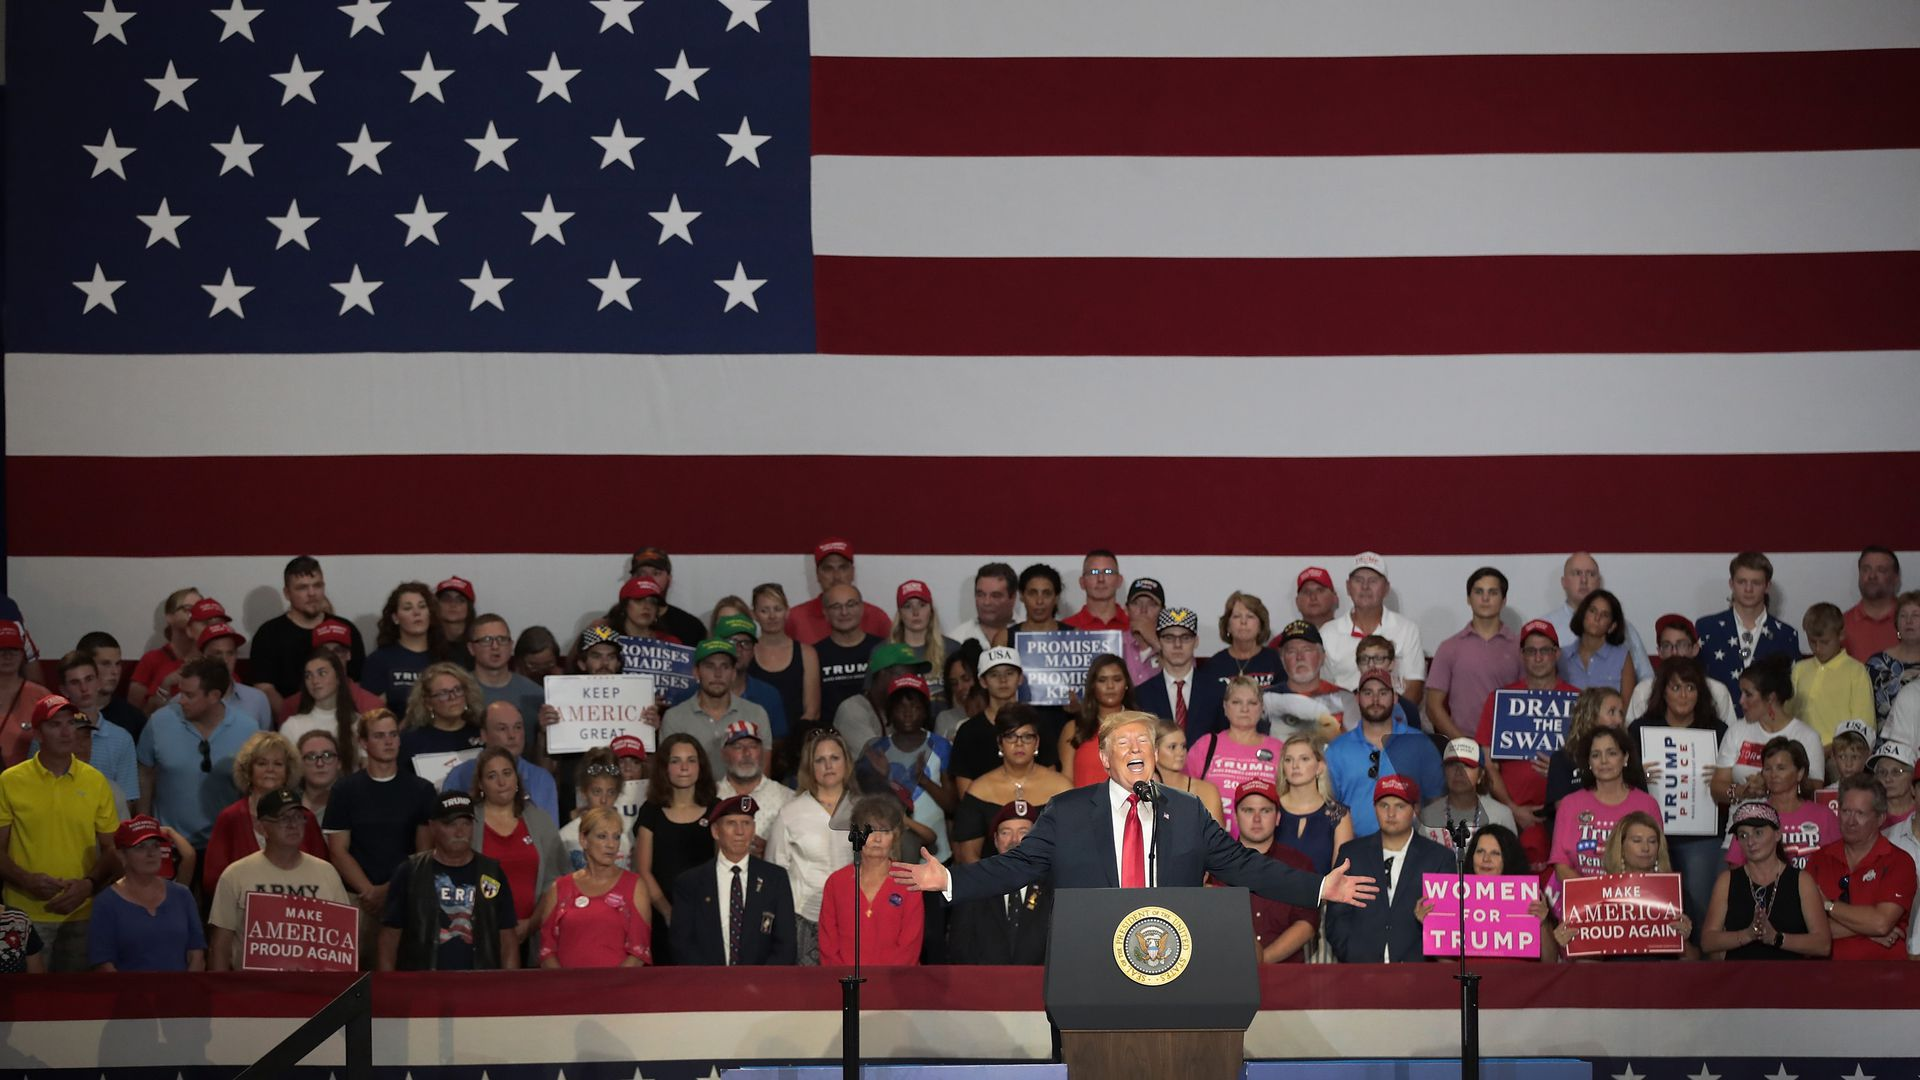 President Trump at a rally.